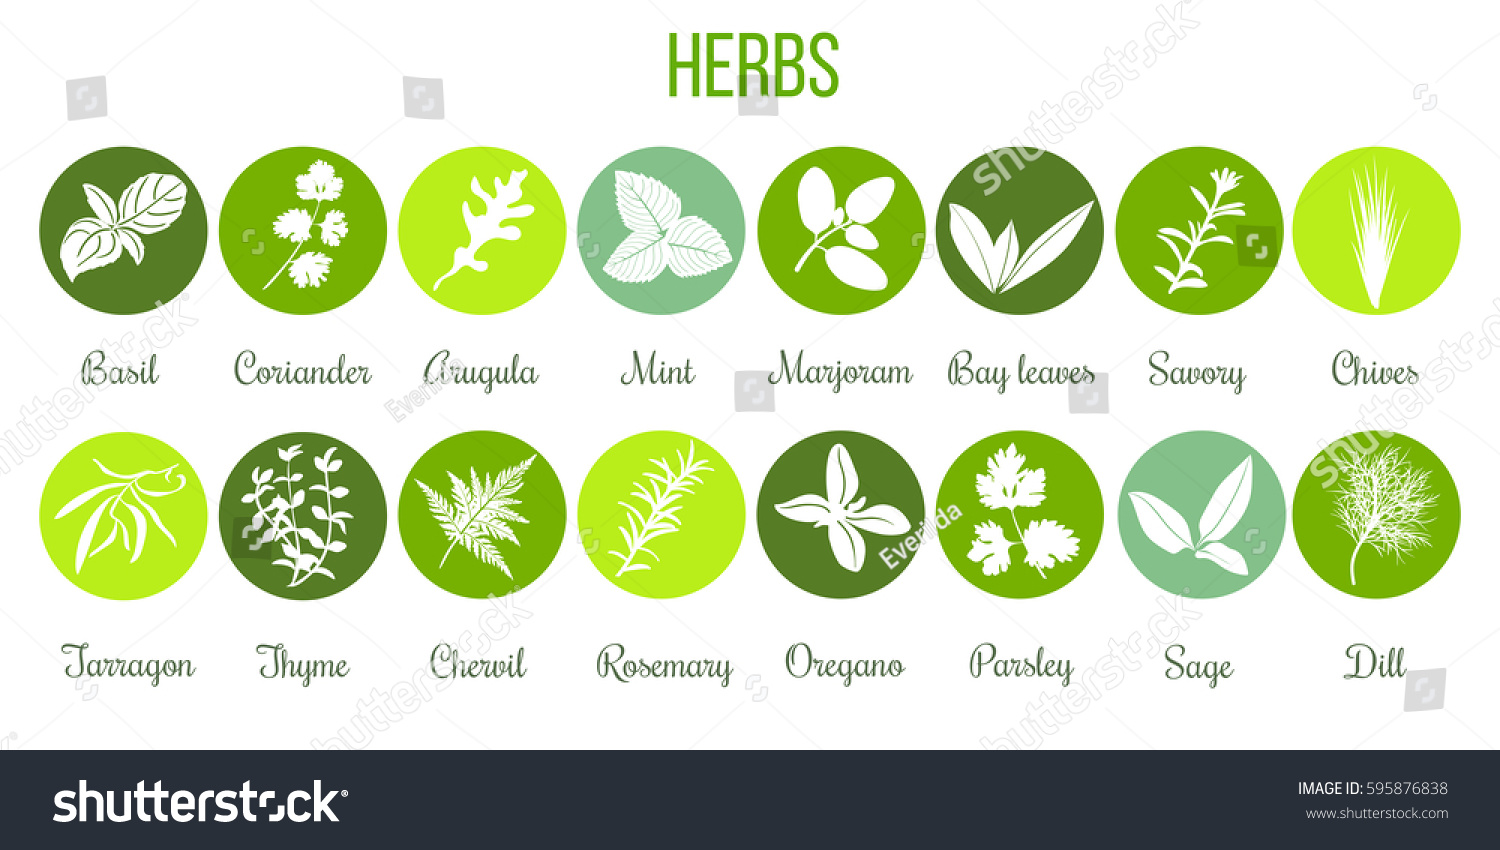 Big icon set of popular culinary herbs white silhouettes in color circles. Color background. Basil, coriander, mint, rosemary, sage, thyme, parsley etc. For cosmetics, store, health care, tag, label #595876838